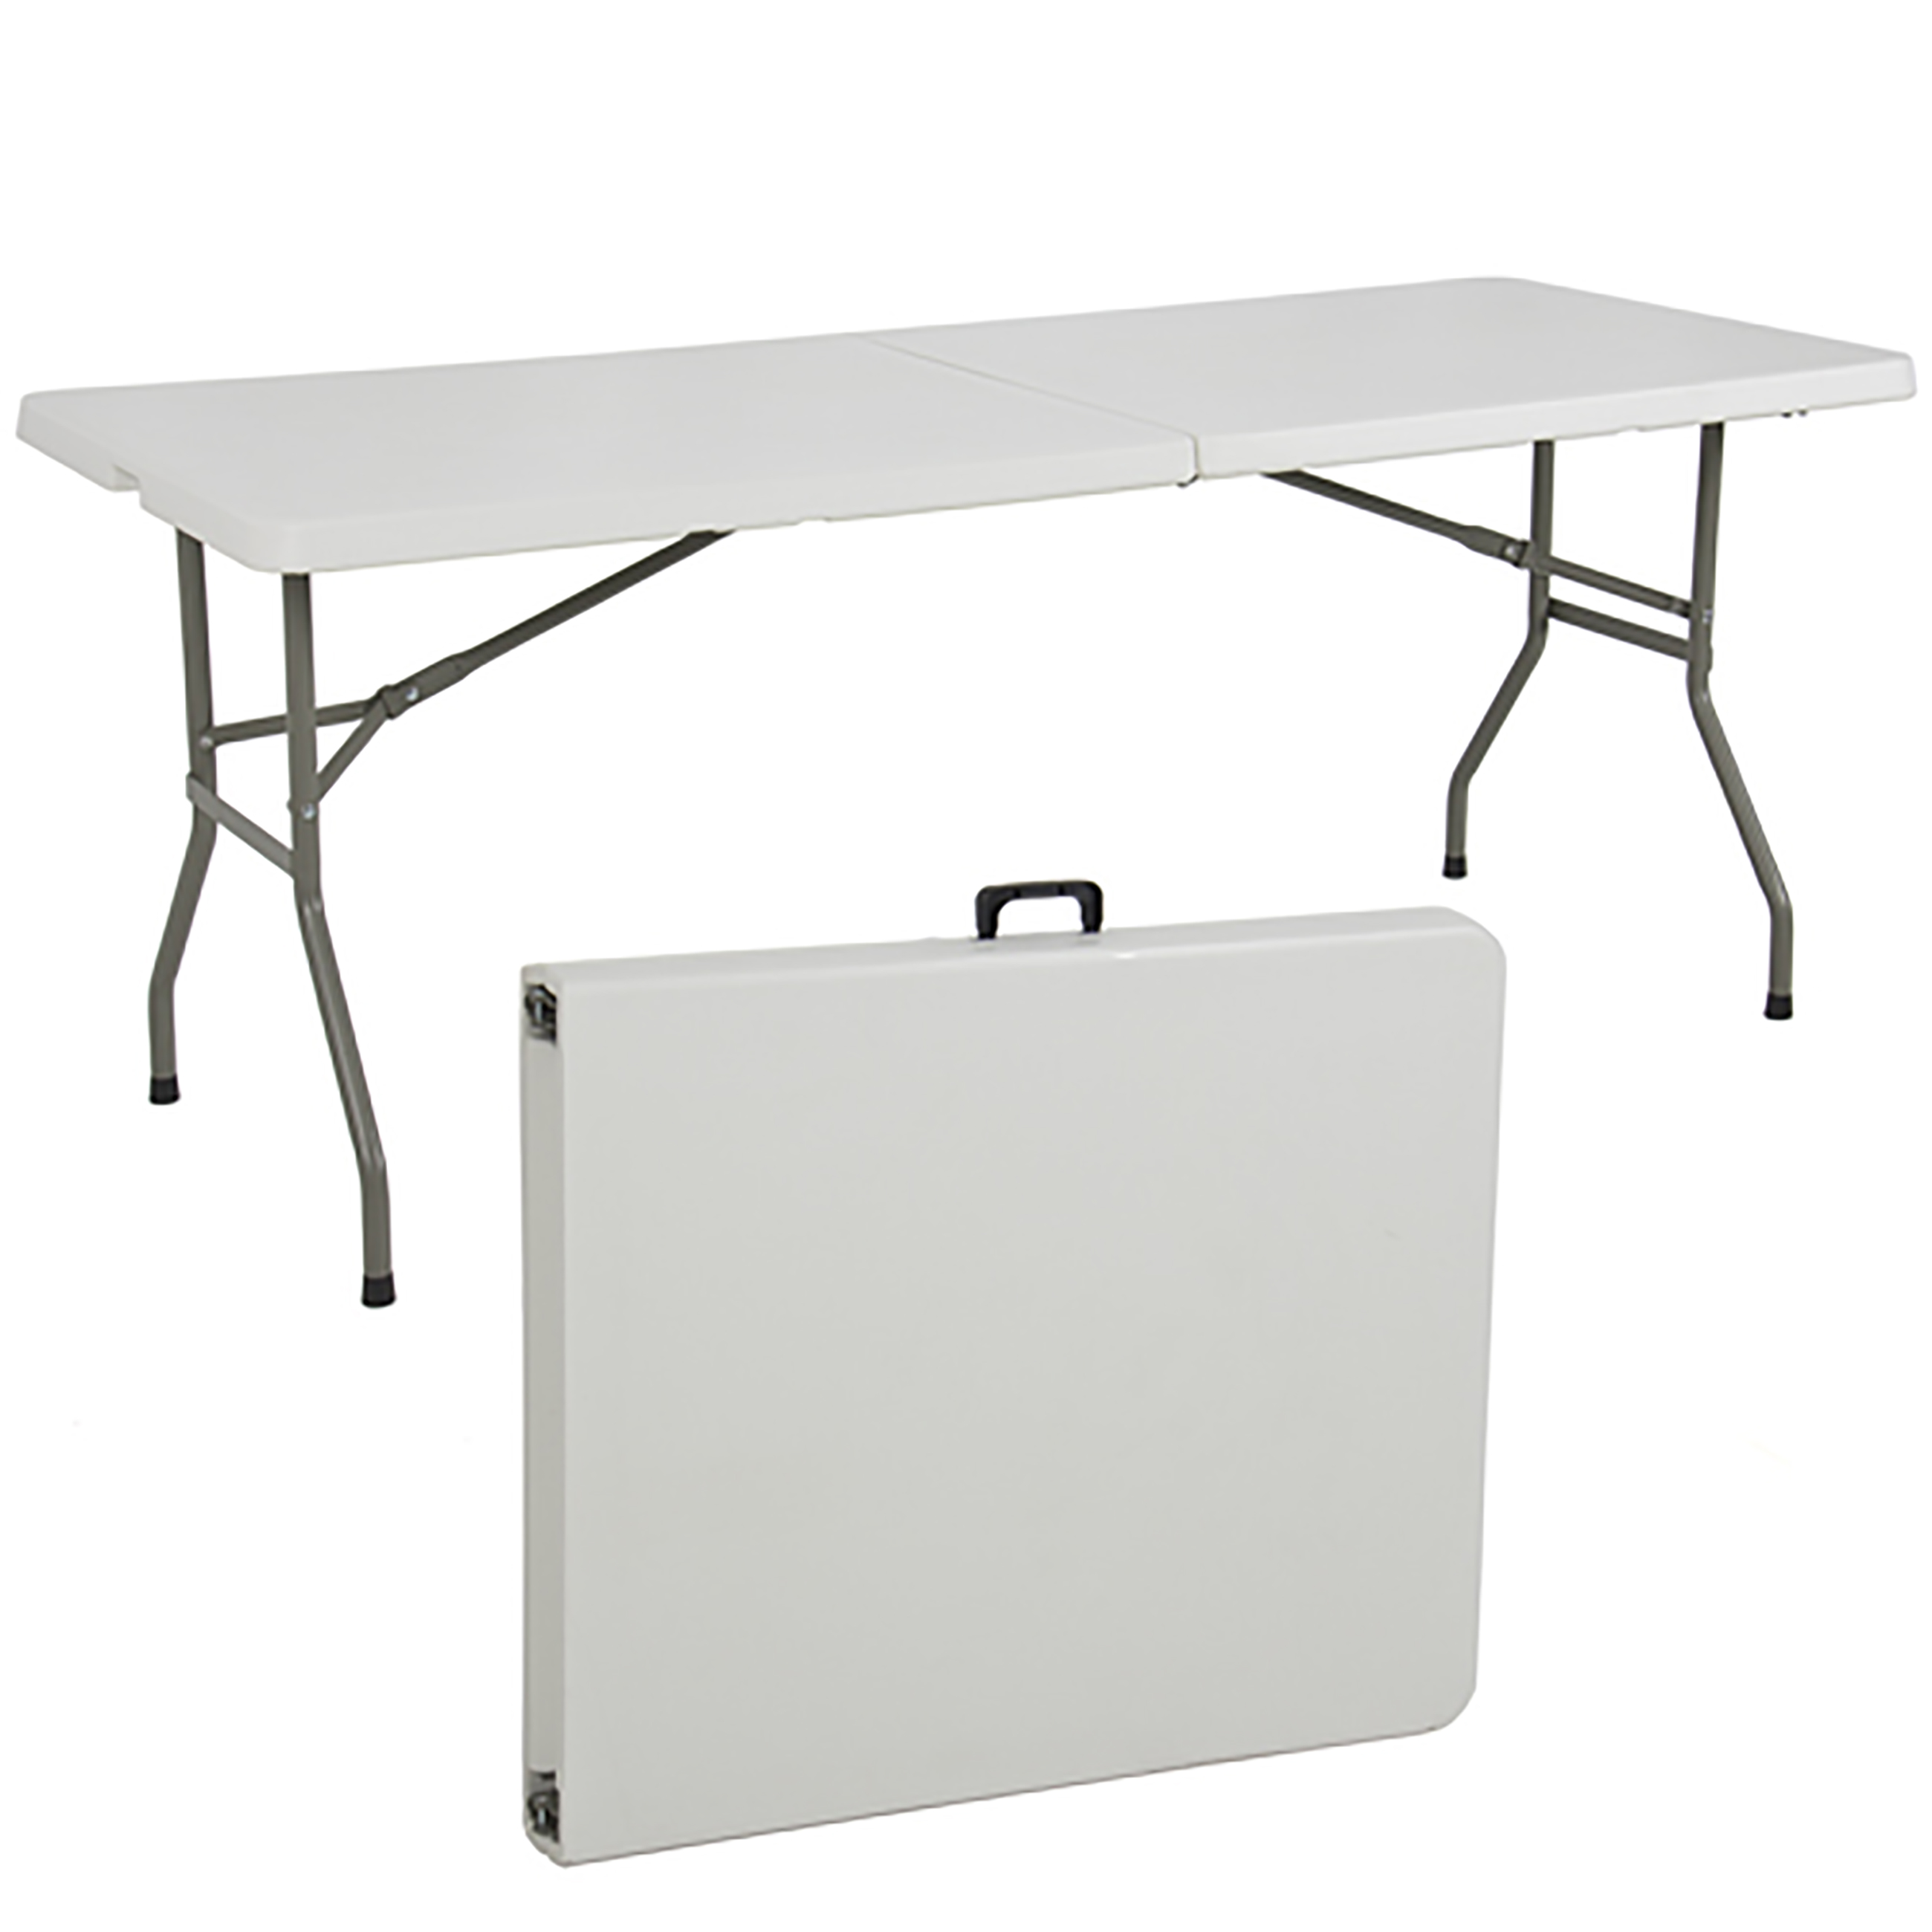 6ft White Plastic Folding Table